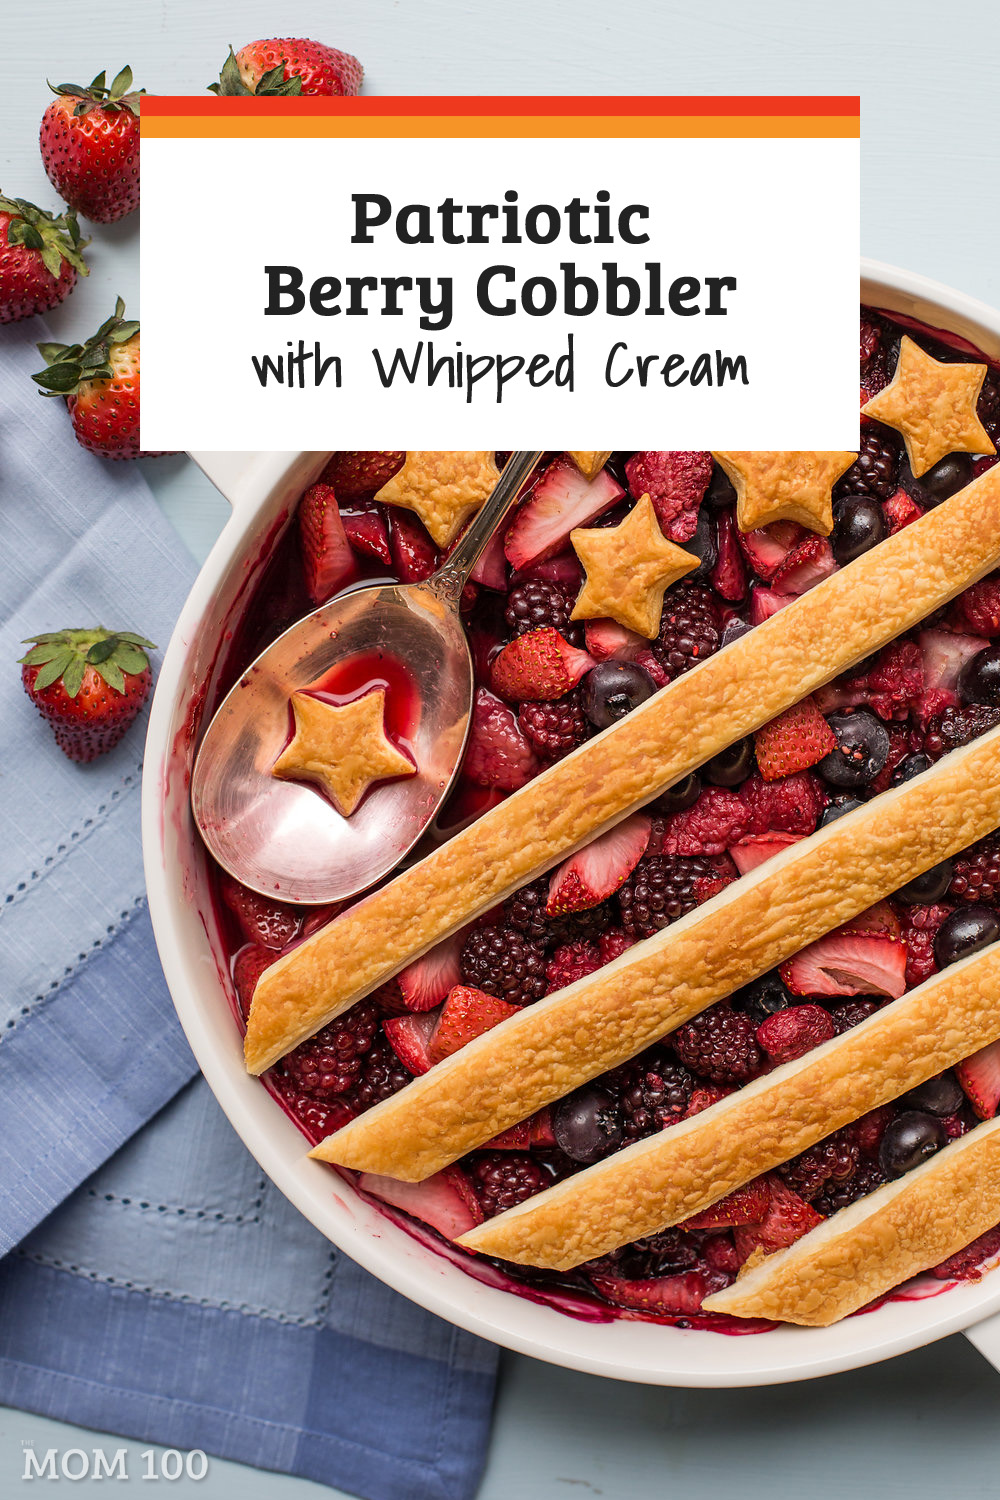 Patriotic Berry Cobbler with Whipped Cream: A red, white and blue dessert for any All-American holiday coming down the pike.